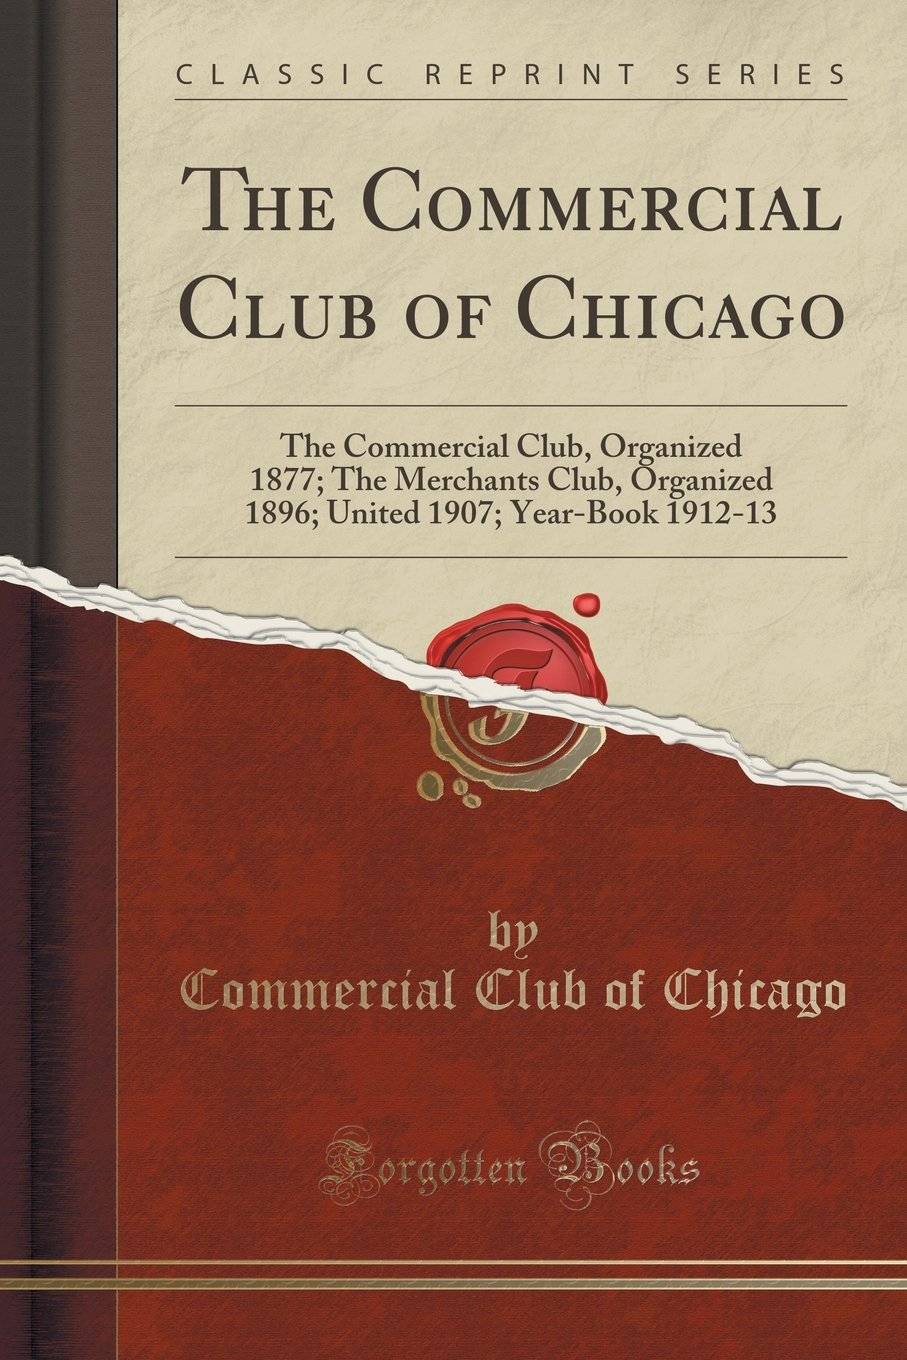 The Commercial Club of Chicago: The Commercial Club, Organized 1877; The Merchants Club, Organized 1896; United 1907; Year-Book 1912-13 (Classic Reprint) pdf